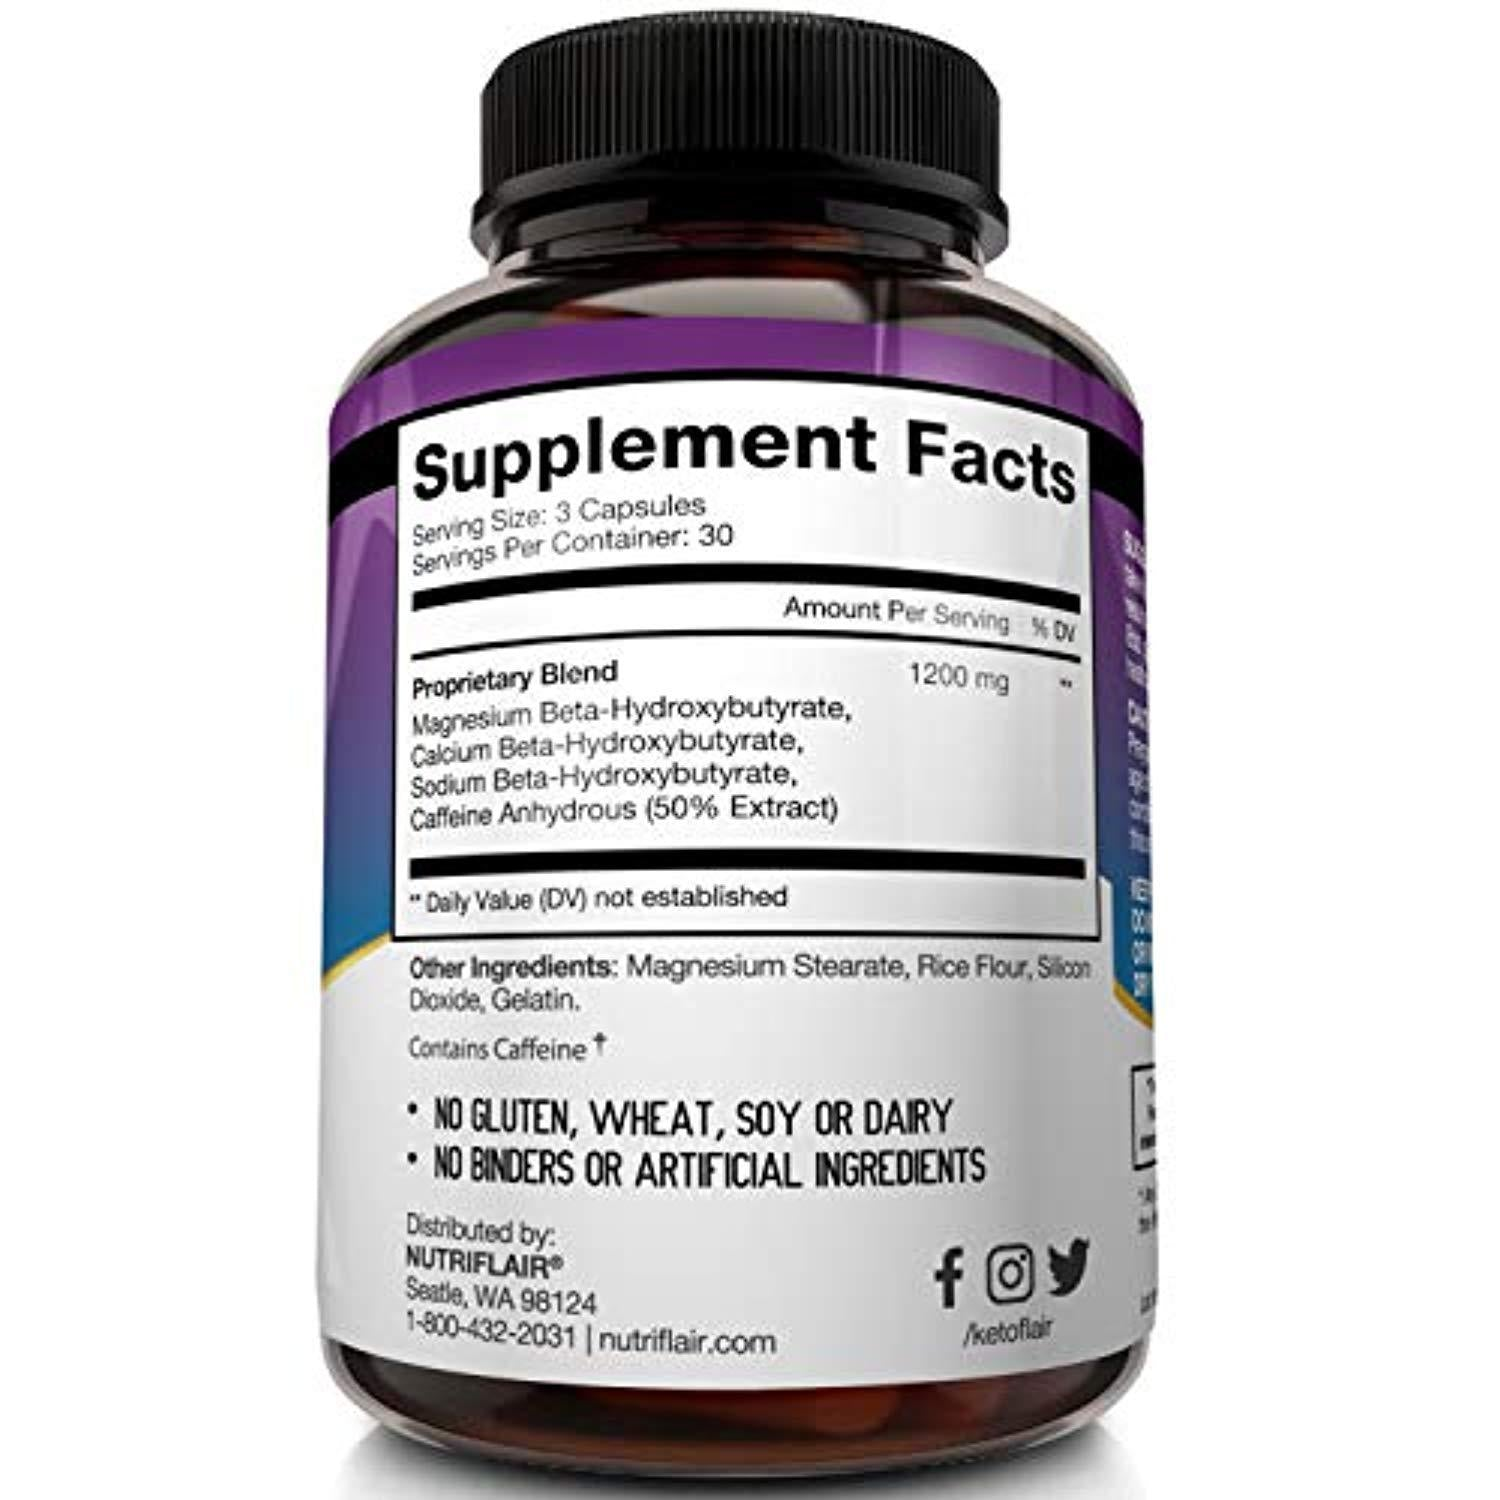 More About Keto Supplement Plan